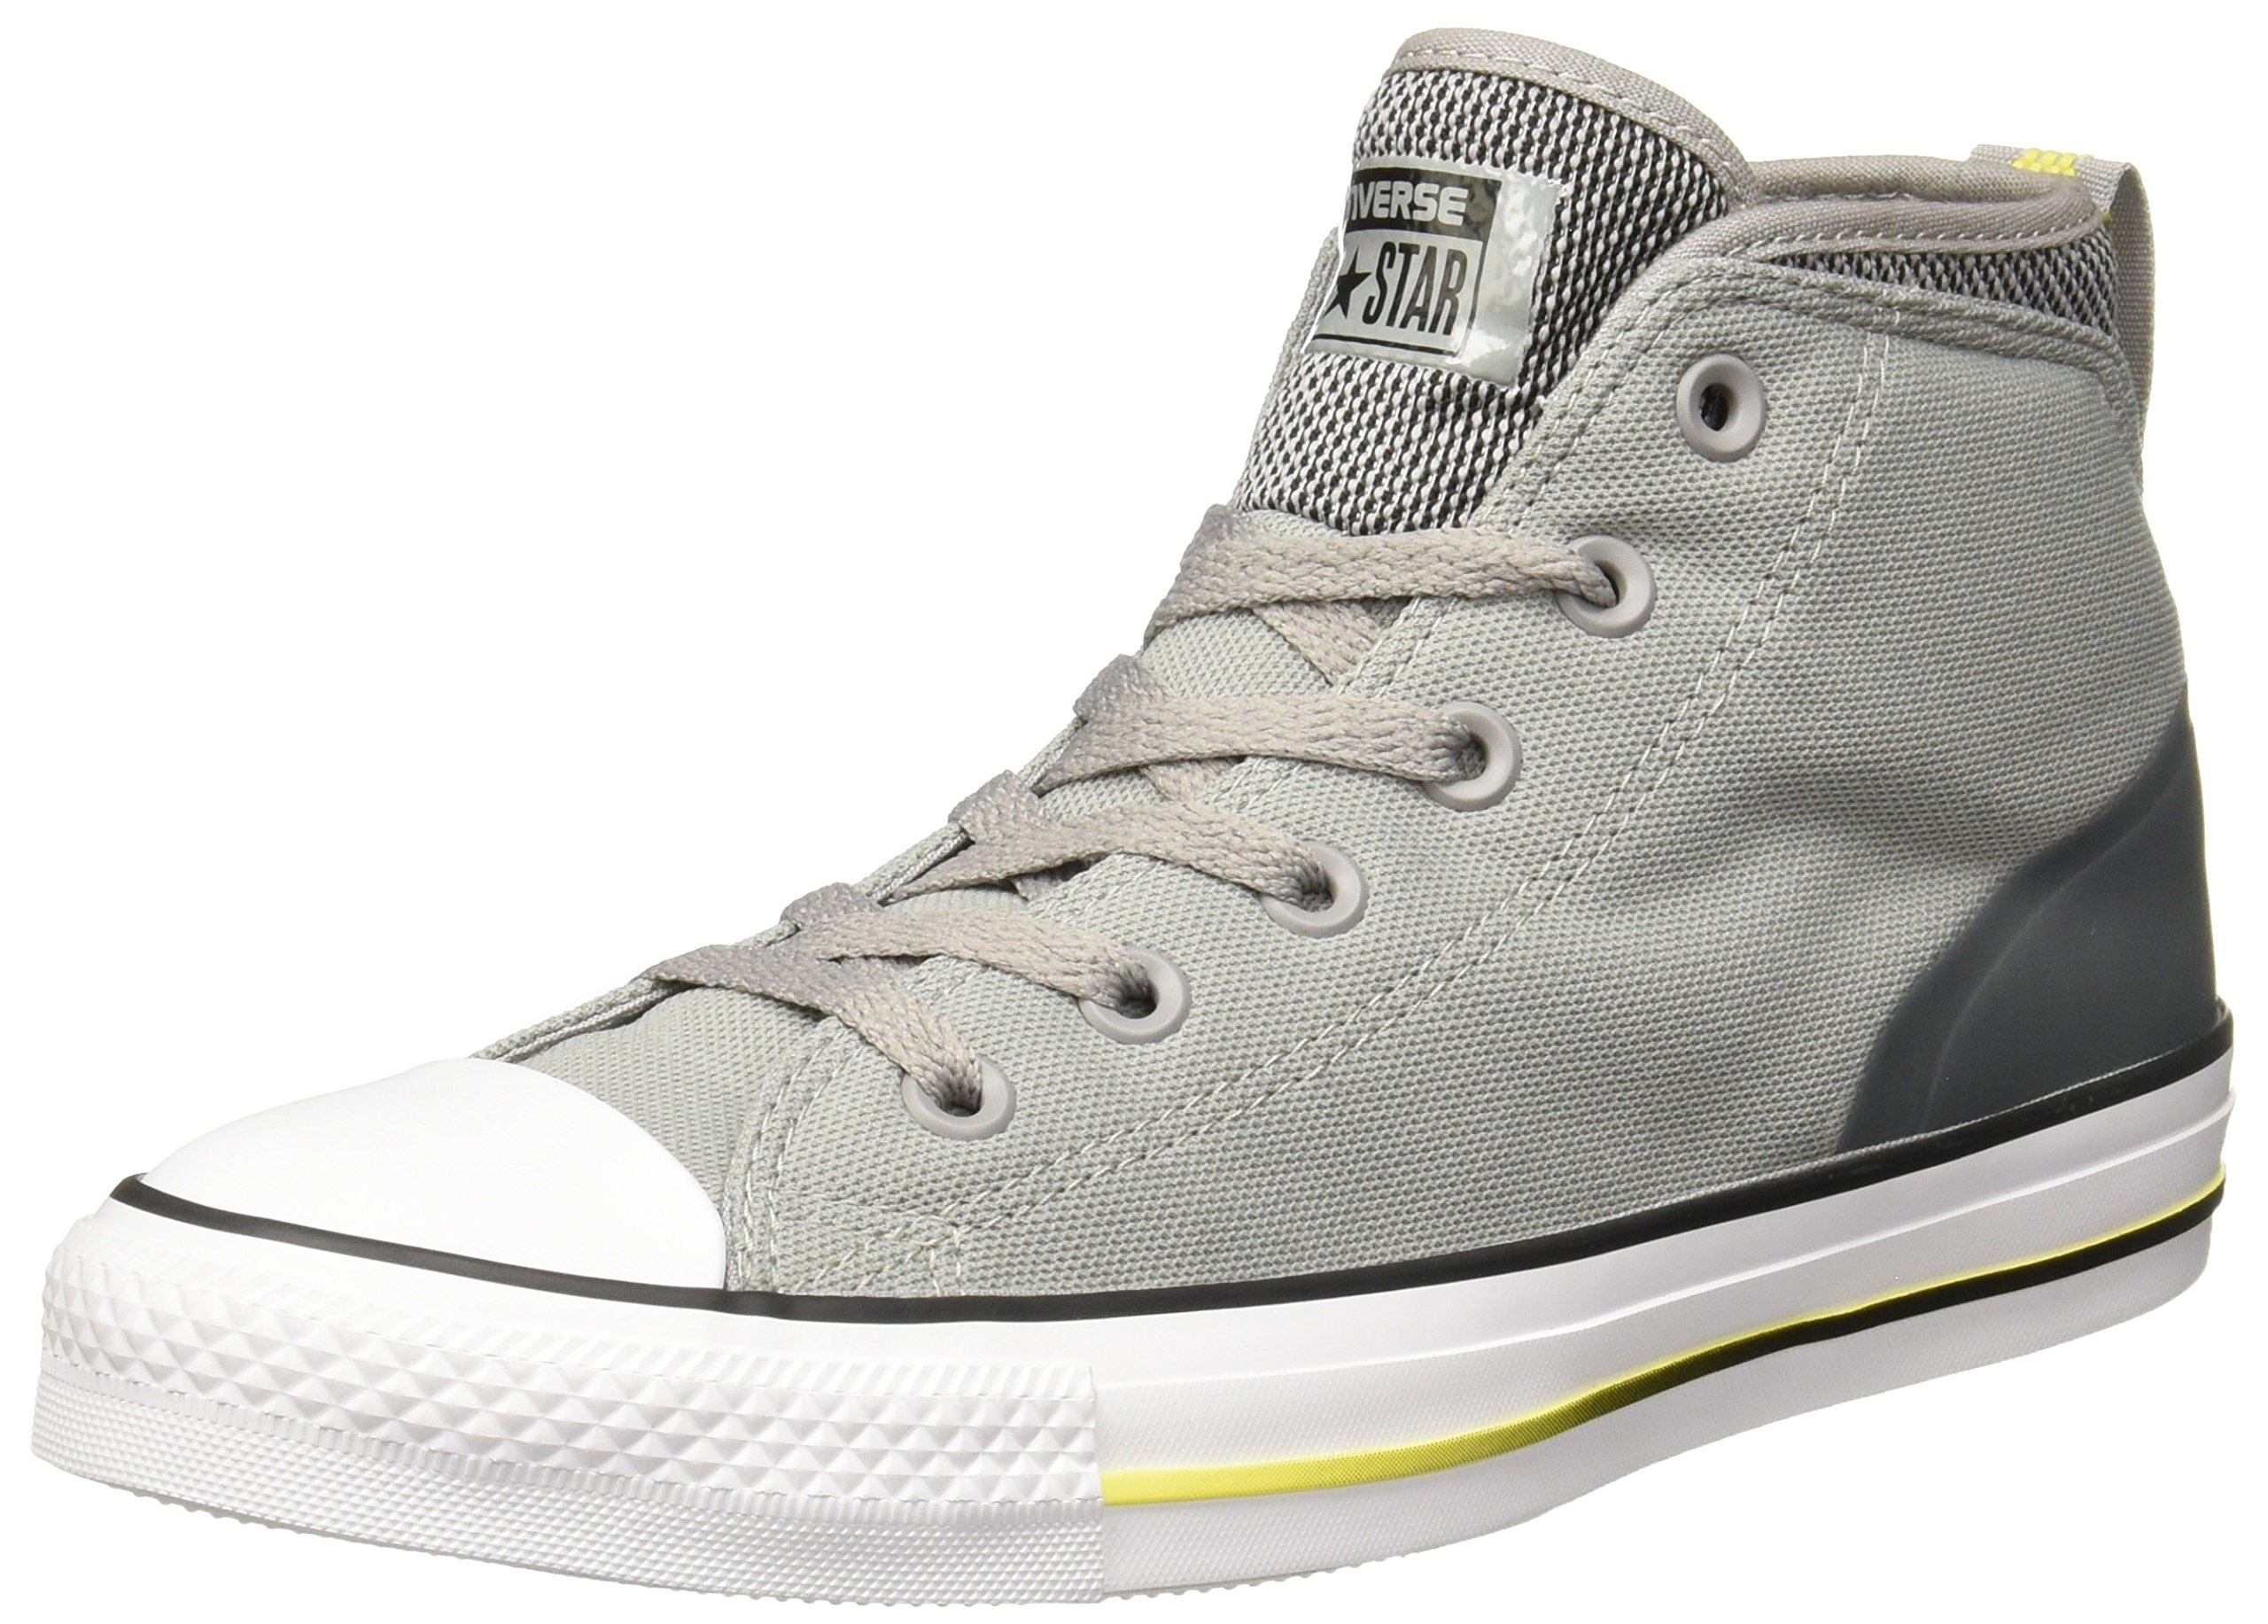 d35f991b208 Galleon - Converse Chuck Taylor All Star Syde Street Summer Mid Dolphin  Black Fresh Yellow Men s Classic Shoes